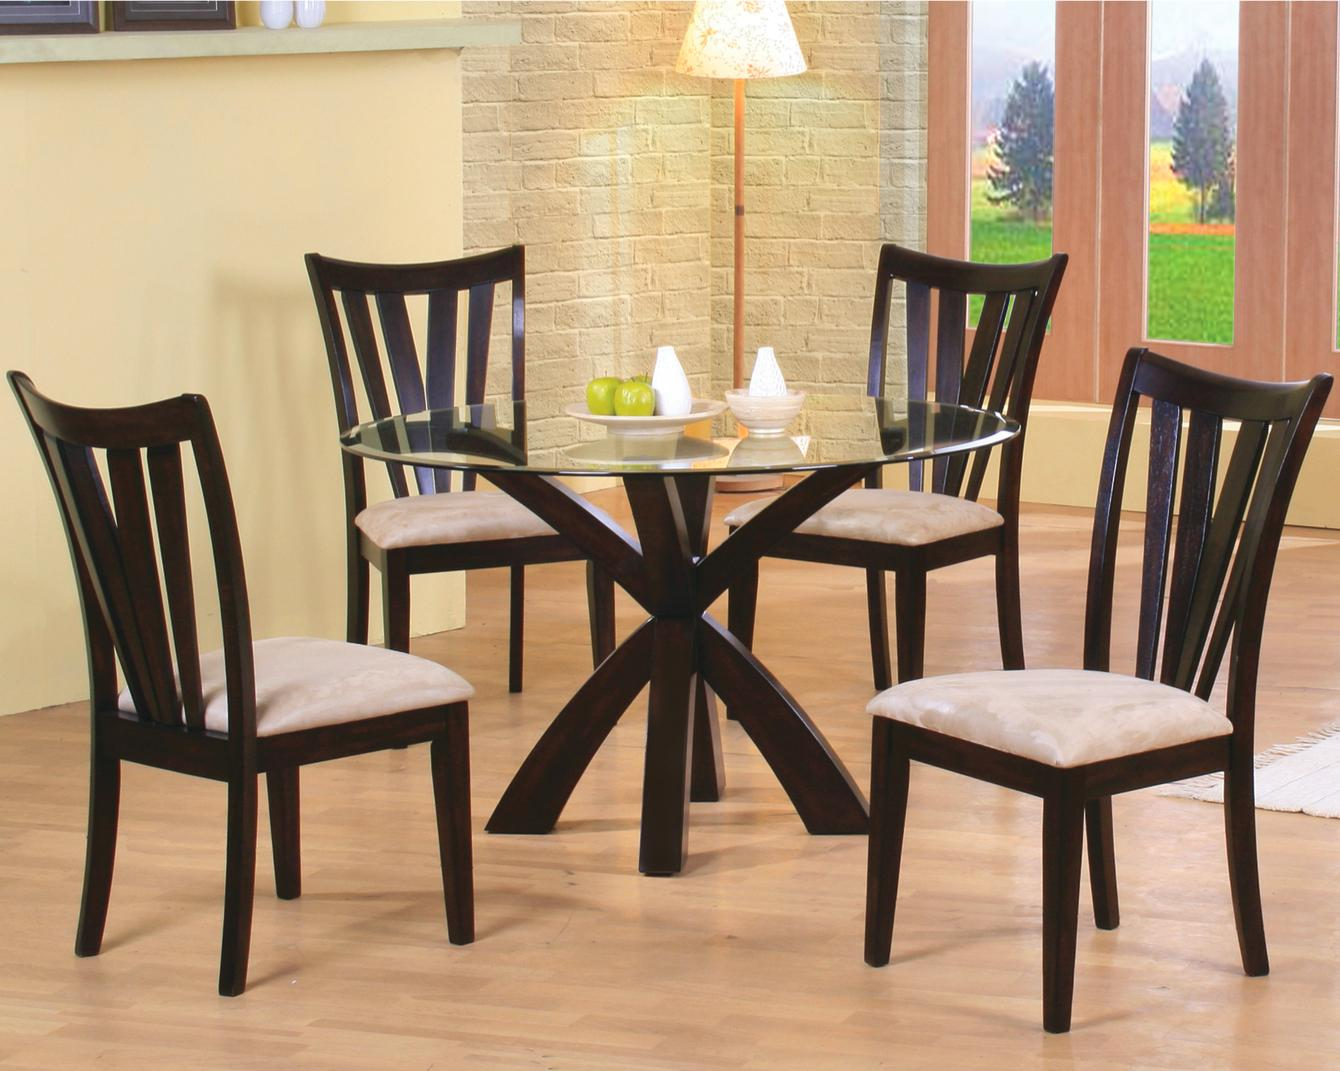 Glass Dining Table And Chairs Shoemaker 5 Piece Dining Set By Coaster At Michael S Furniture Warehouse